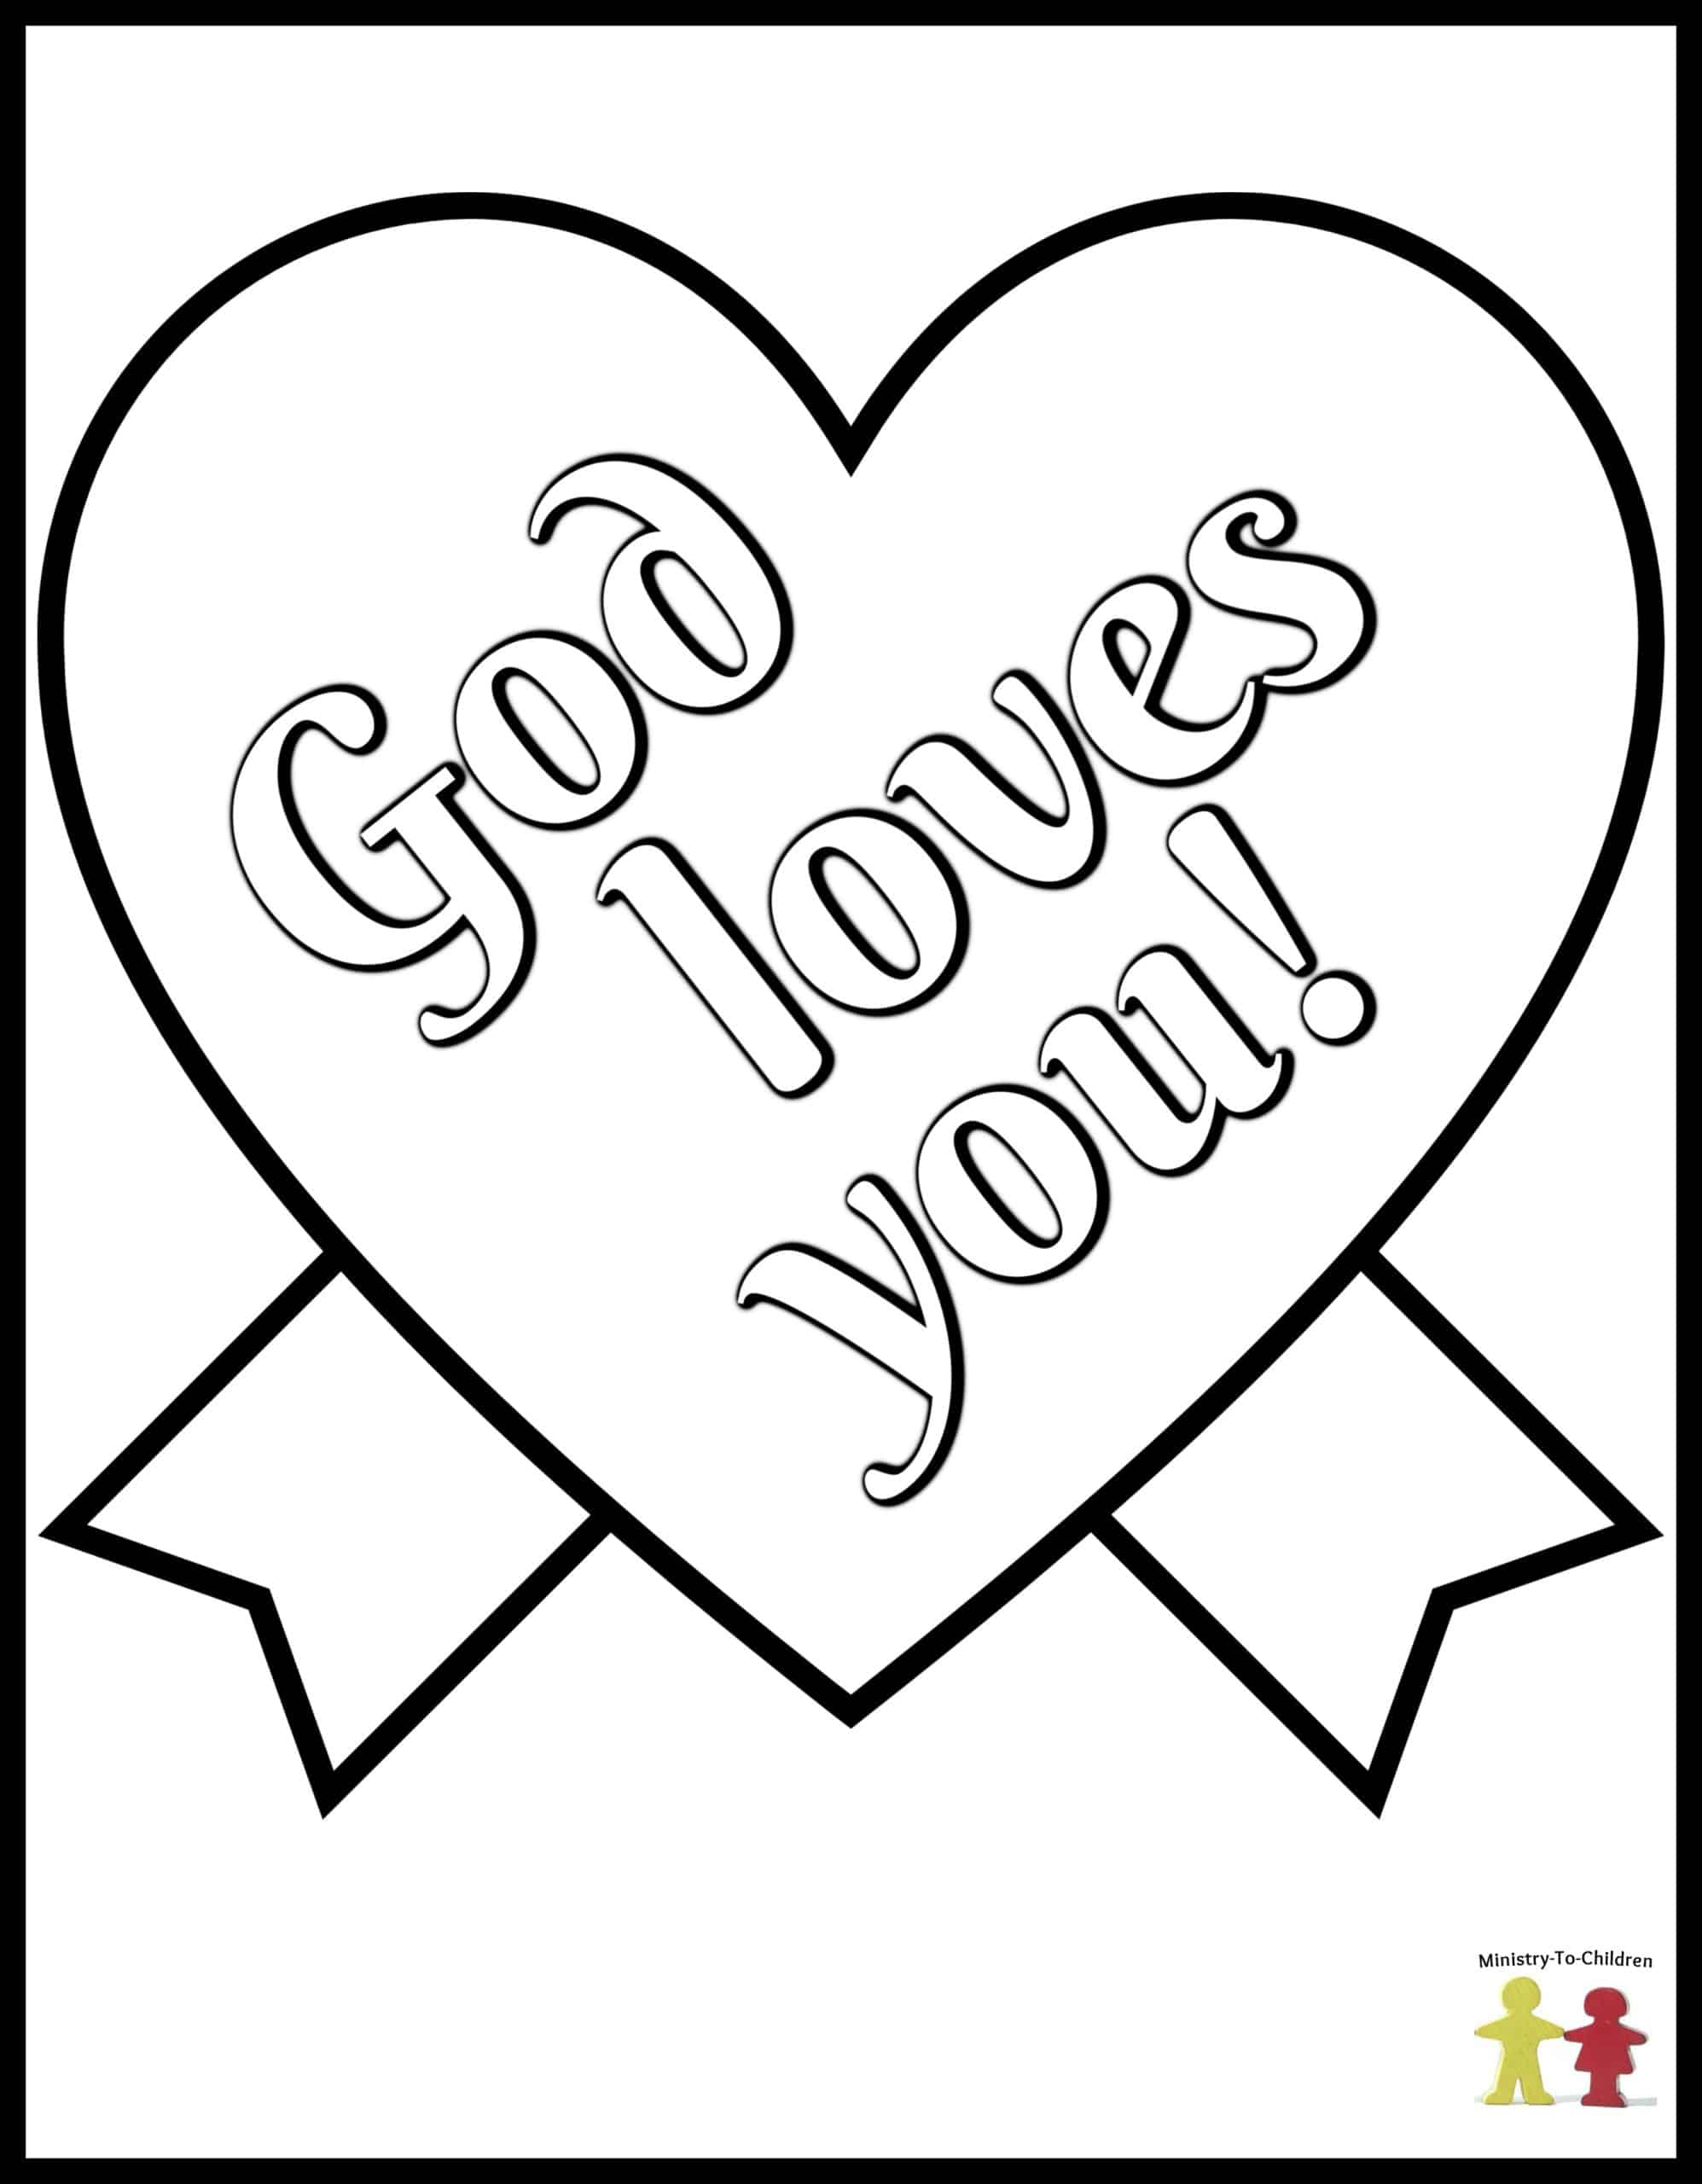 15 Valentine's Day Coloring Pages for Kids | Shutterfly | 2560x1995